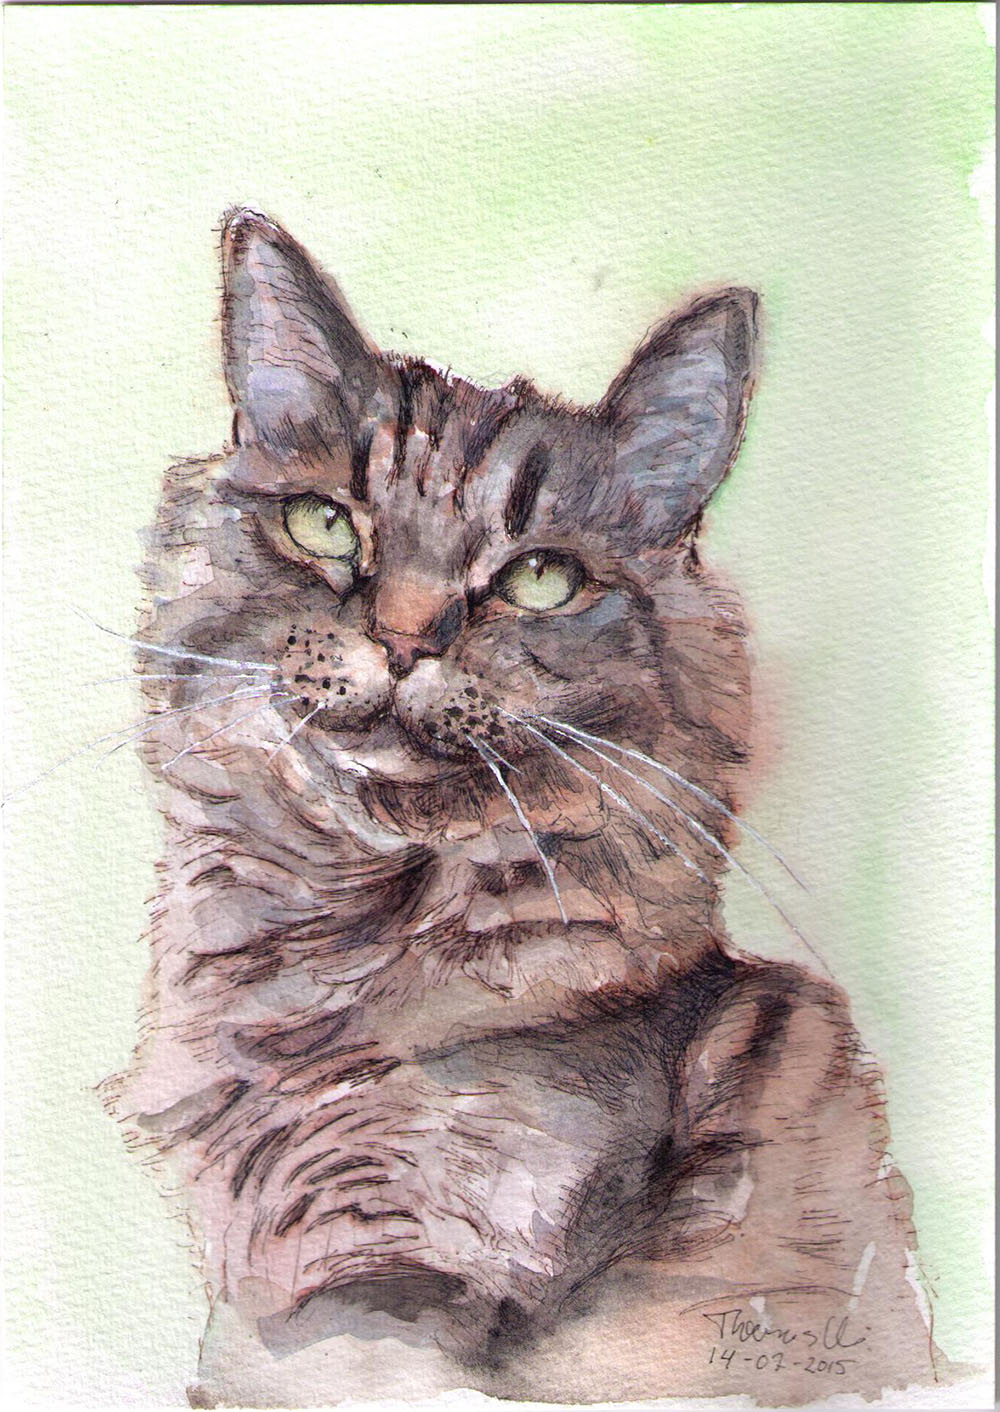 Drawing of a cat called Benji in ballpoint pen and watercolor